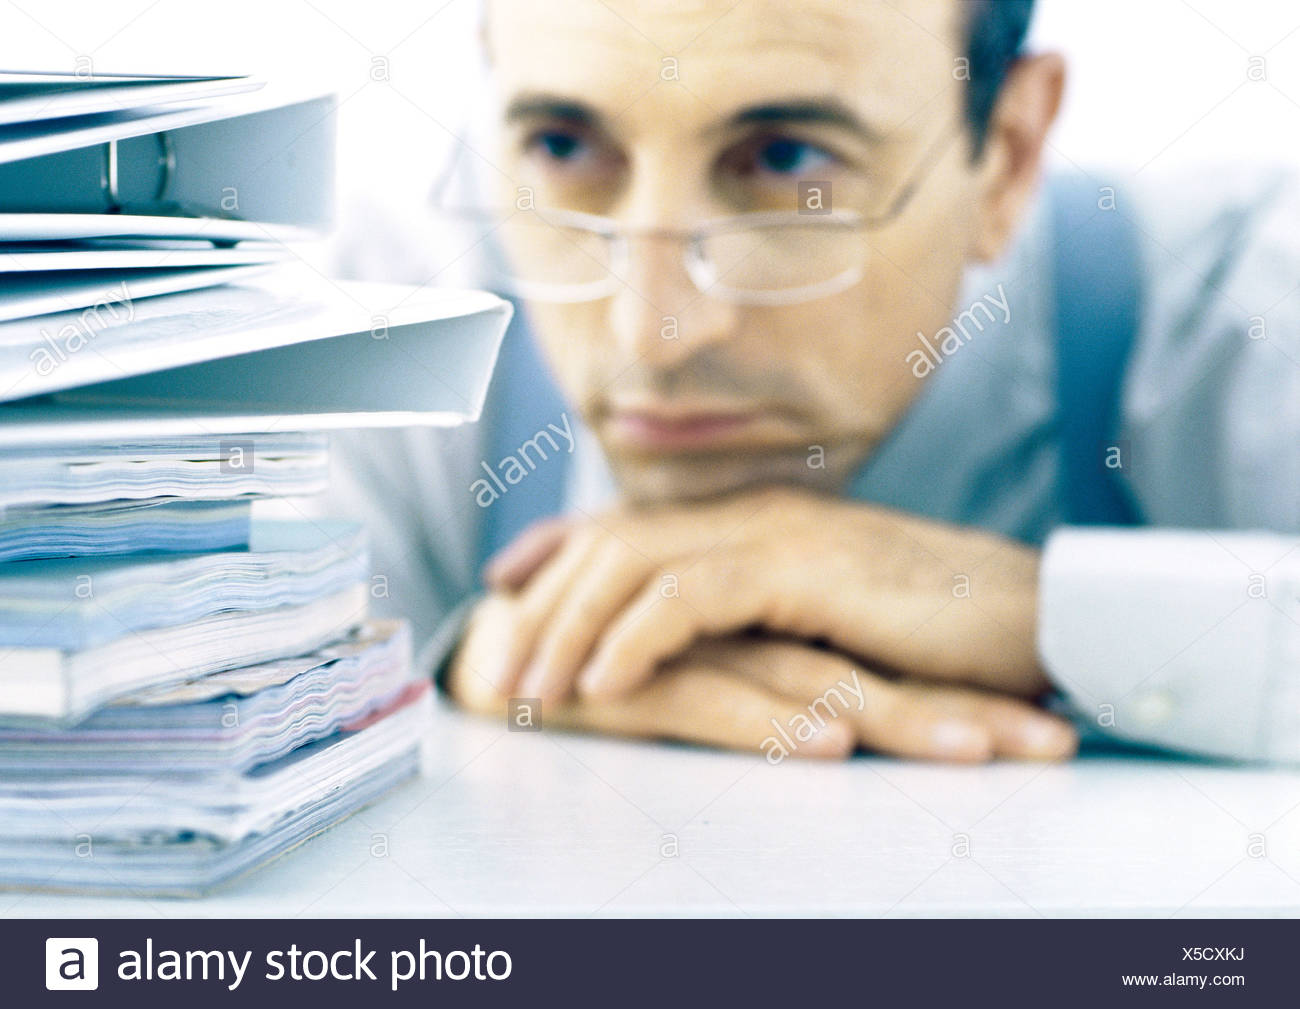 Man resting head on hands, looking at stack of files - Stock Image